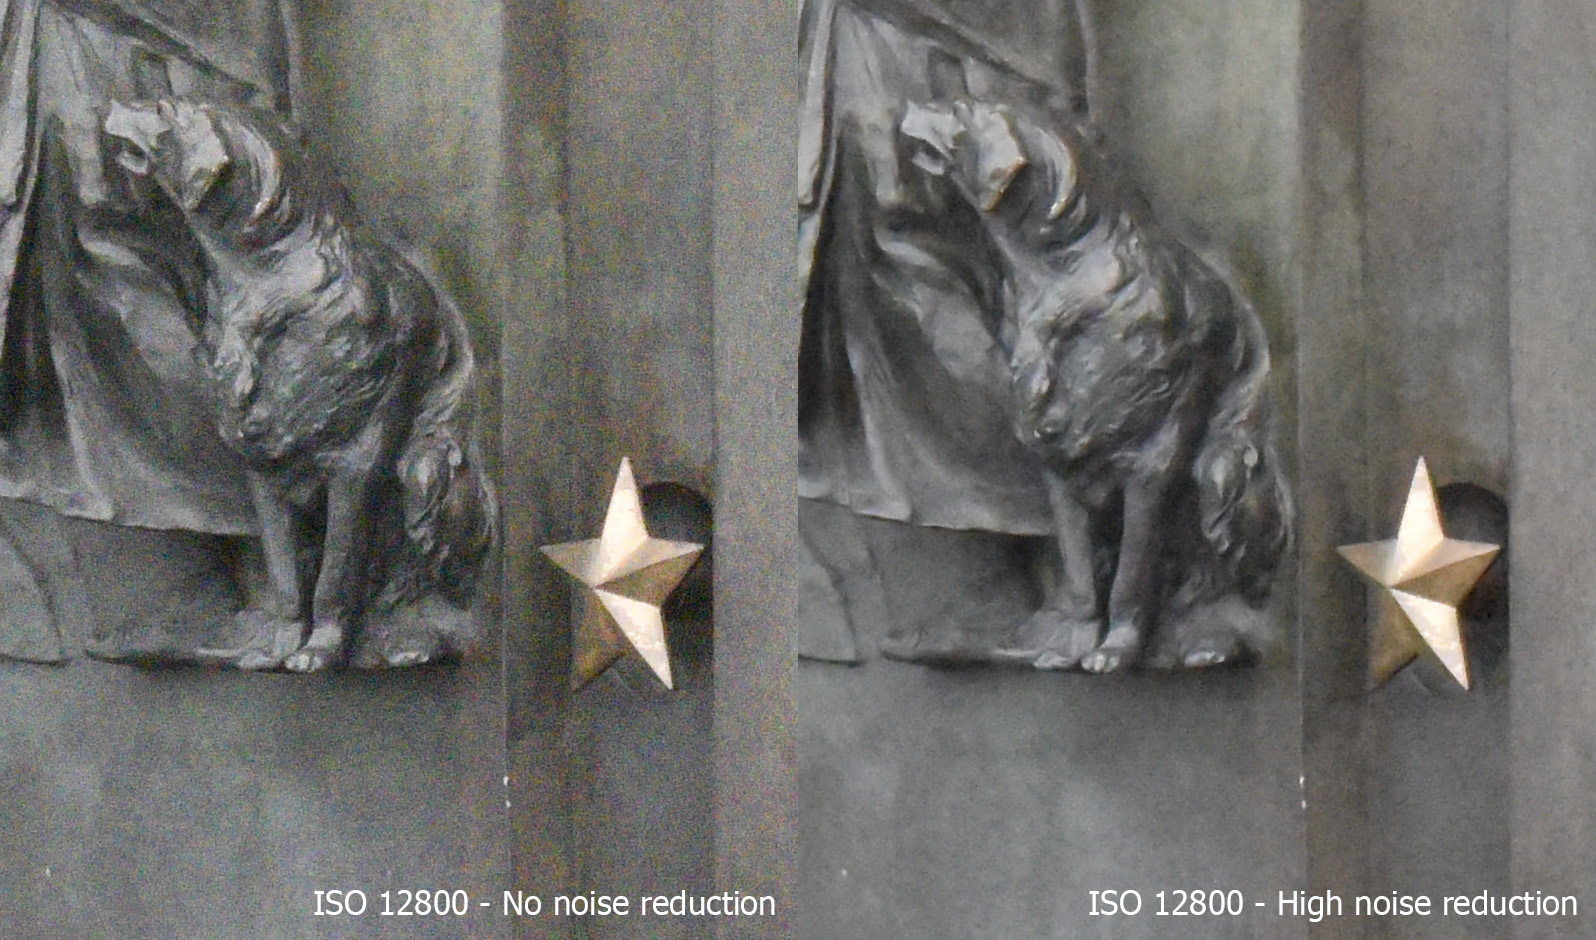 Nikon D810 ISO test crop comparsion with and without noise reduction